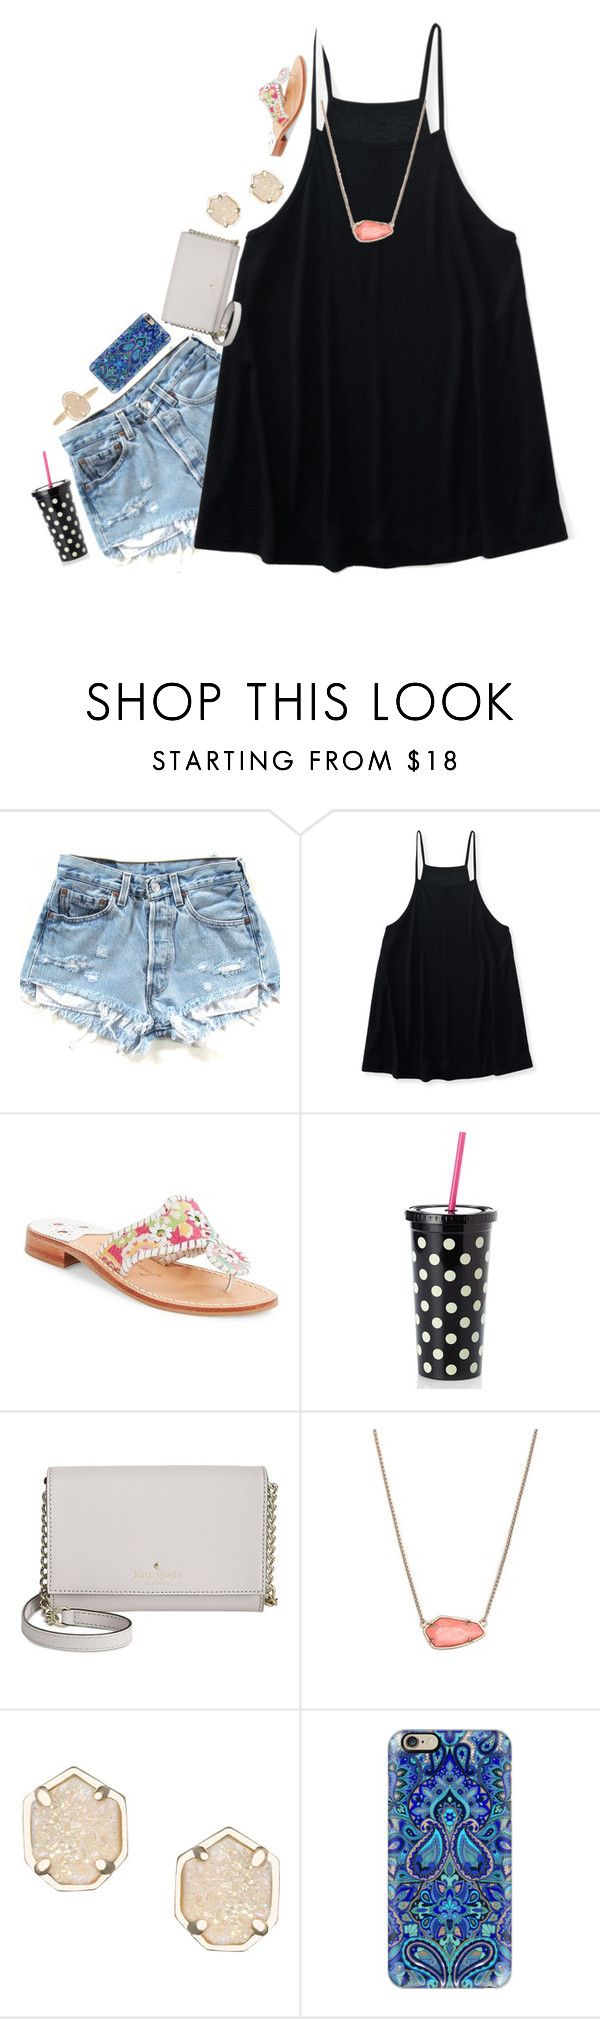 """""""New layout. Just trying new things"""" by pandapeeper ❤ liked on Polyvore featuring Aéropostale, Jack Rogers, Kate Spade, Kendra Scott and Casetify"""